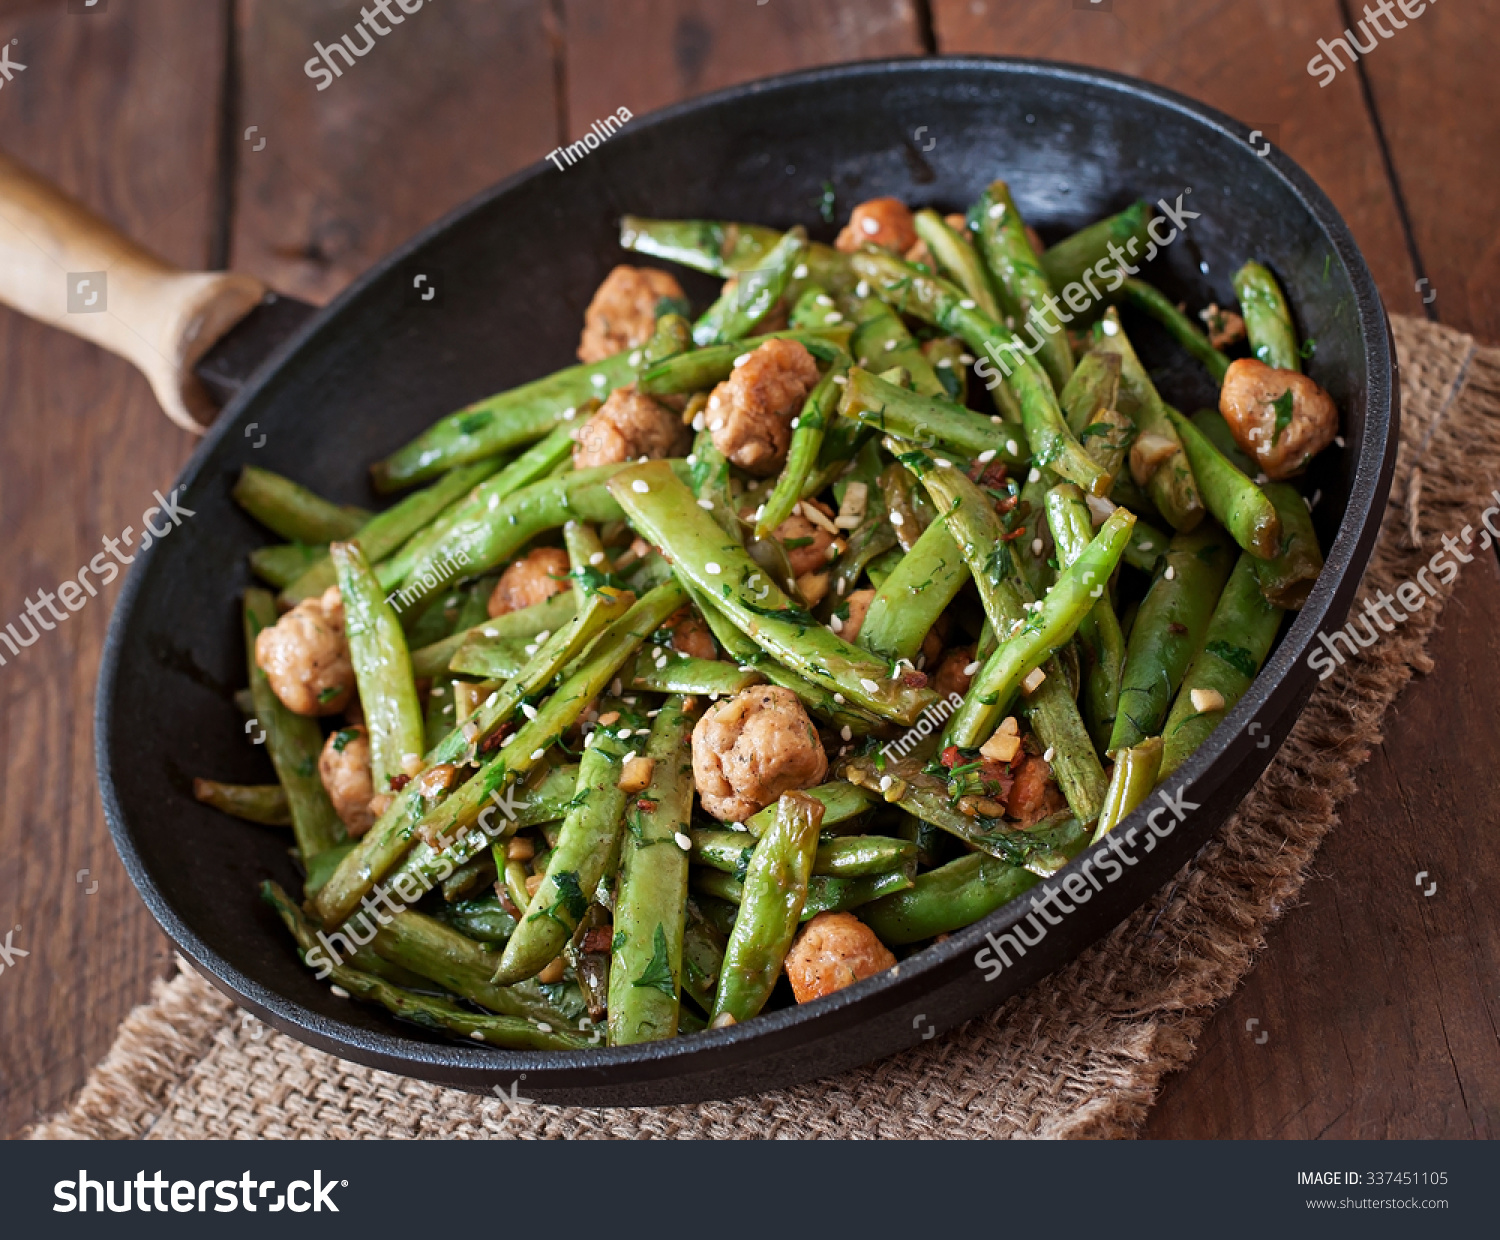 Green Bean and Meatball Stir-Fry recommend